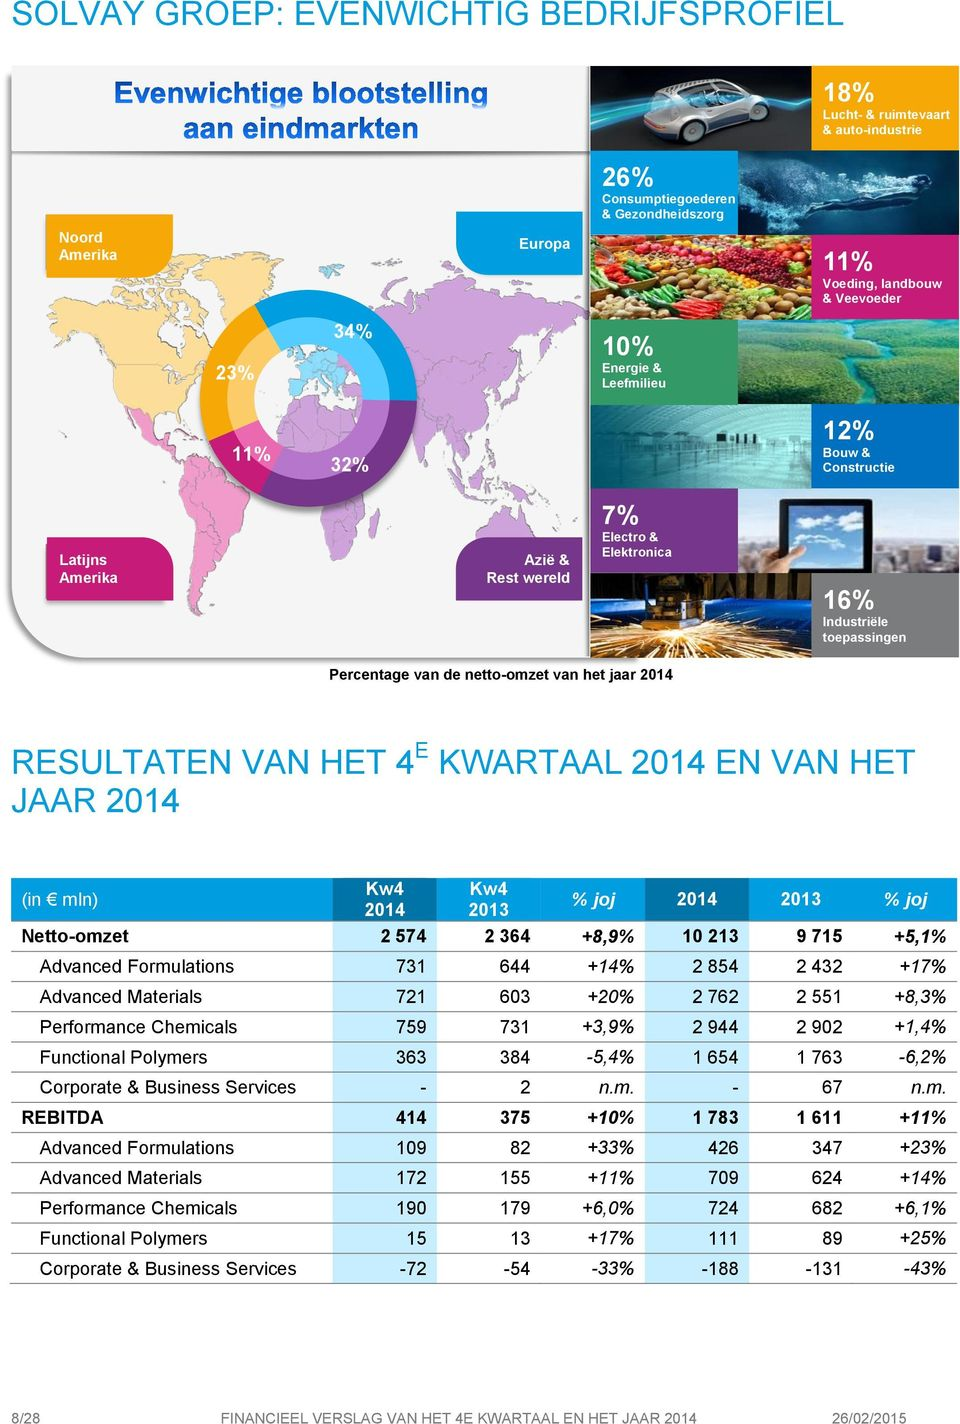 4 E KWARTAAL 2014 EN VAN HET JAAR 2014 (in mln) 2014 2013 % joj 2014 2013 % joj Netto-omzet 2 574 2 364 +8,9% 10 213 9 715 +5,1% Advanced Formulations 731 644 +14% 2 854 2 432 +17% Advanced Materials